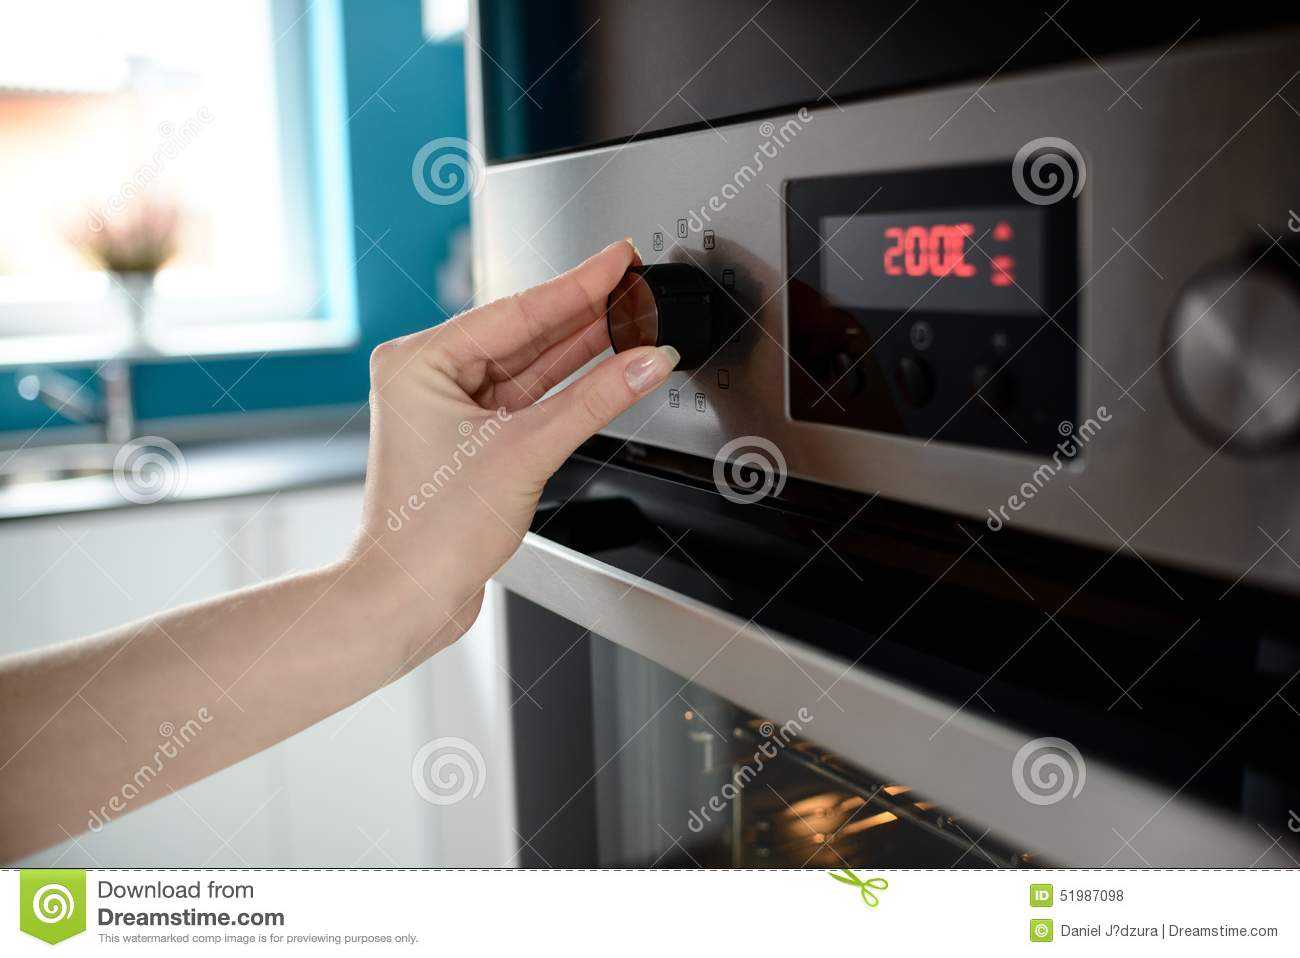 temperature control on oven. The display shows the set temperature to #20768C